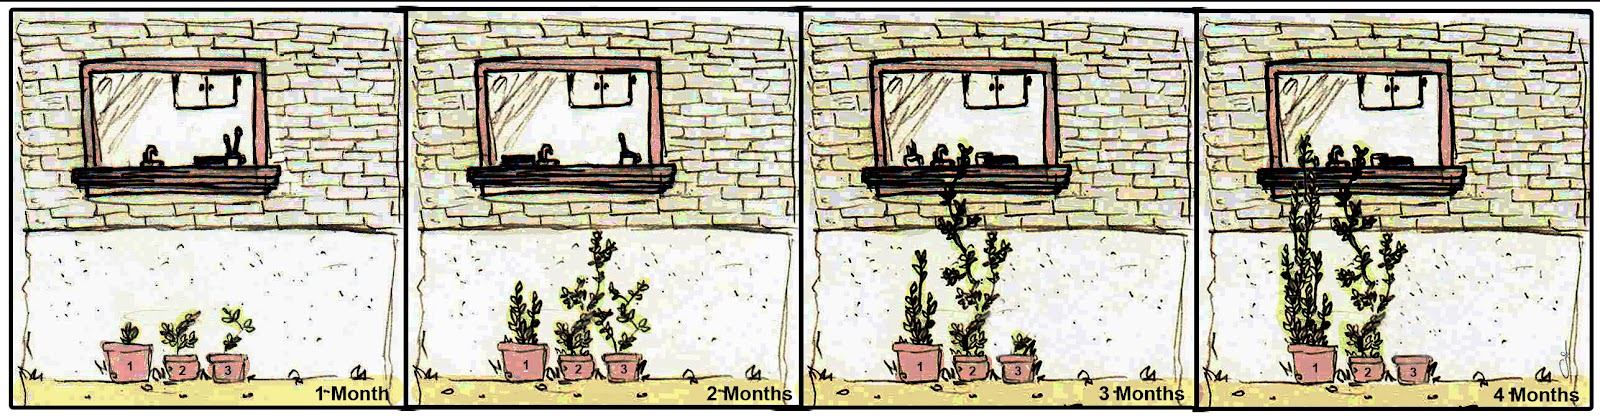 window 3 months 4 box with month.jpg